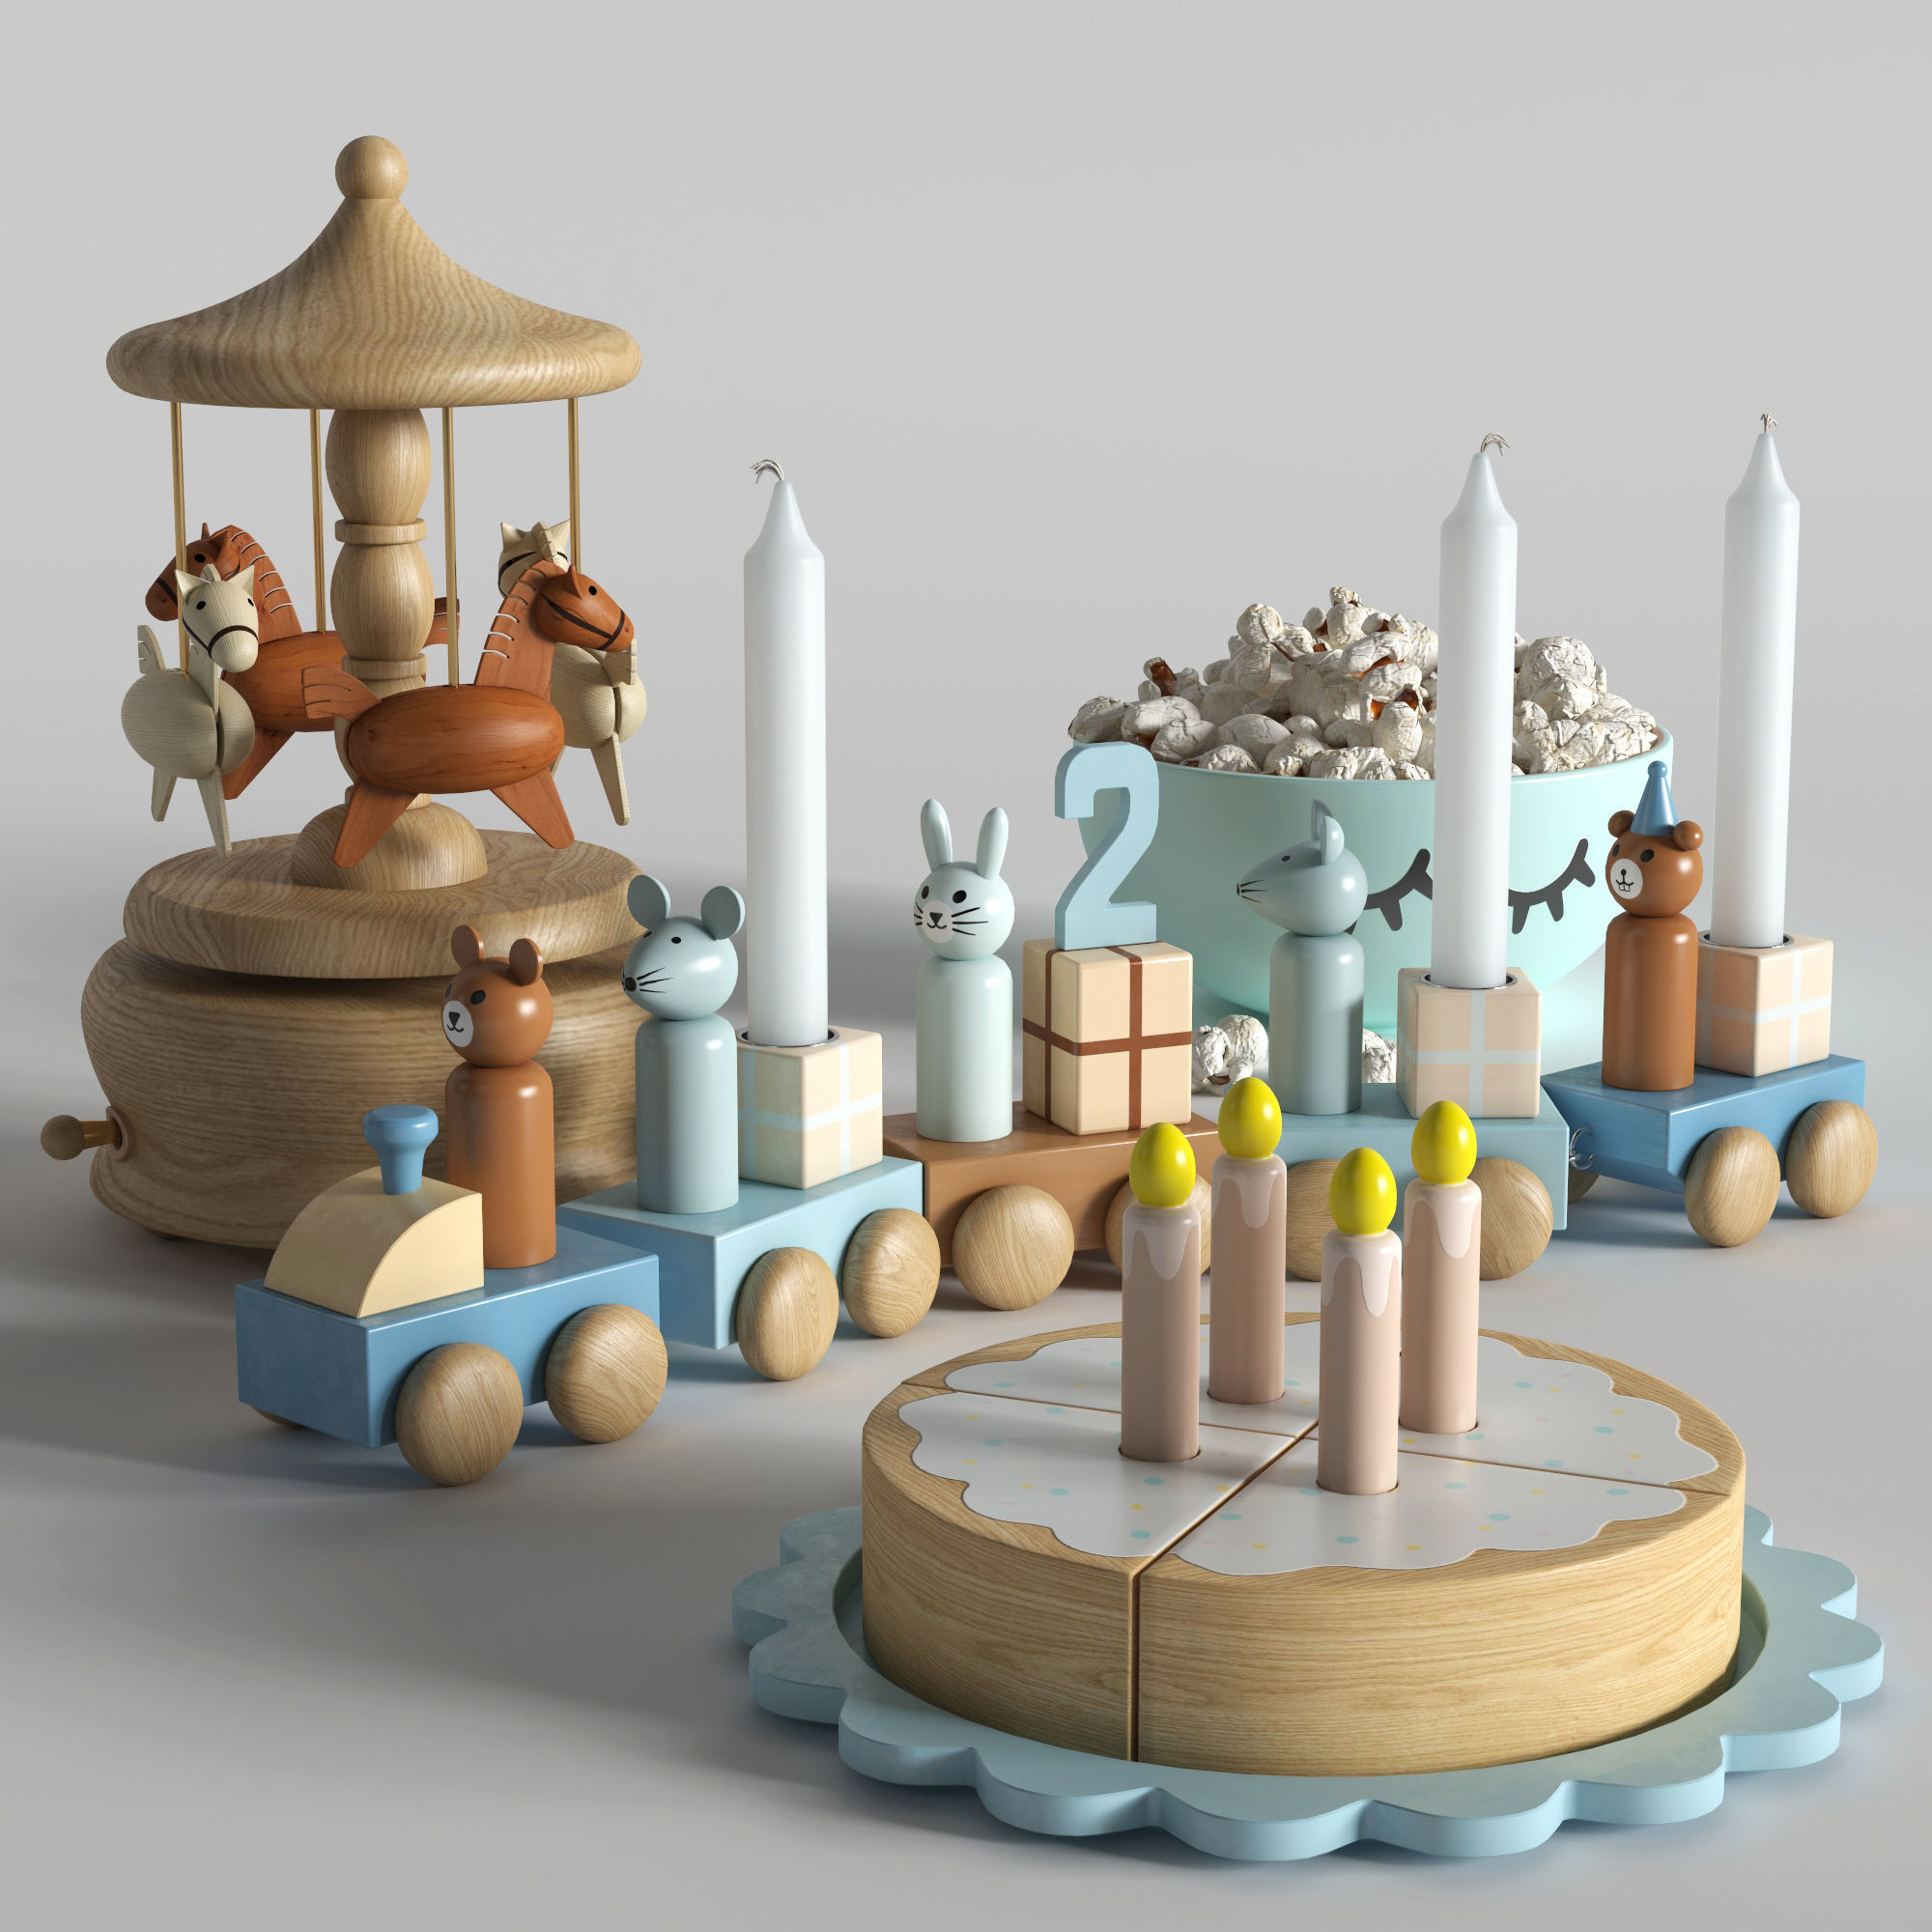 Set of toys with a cake